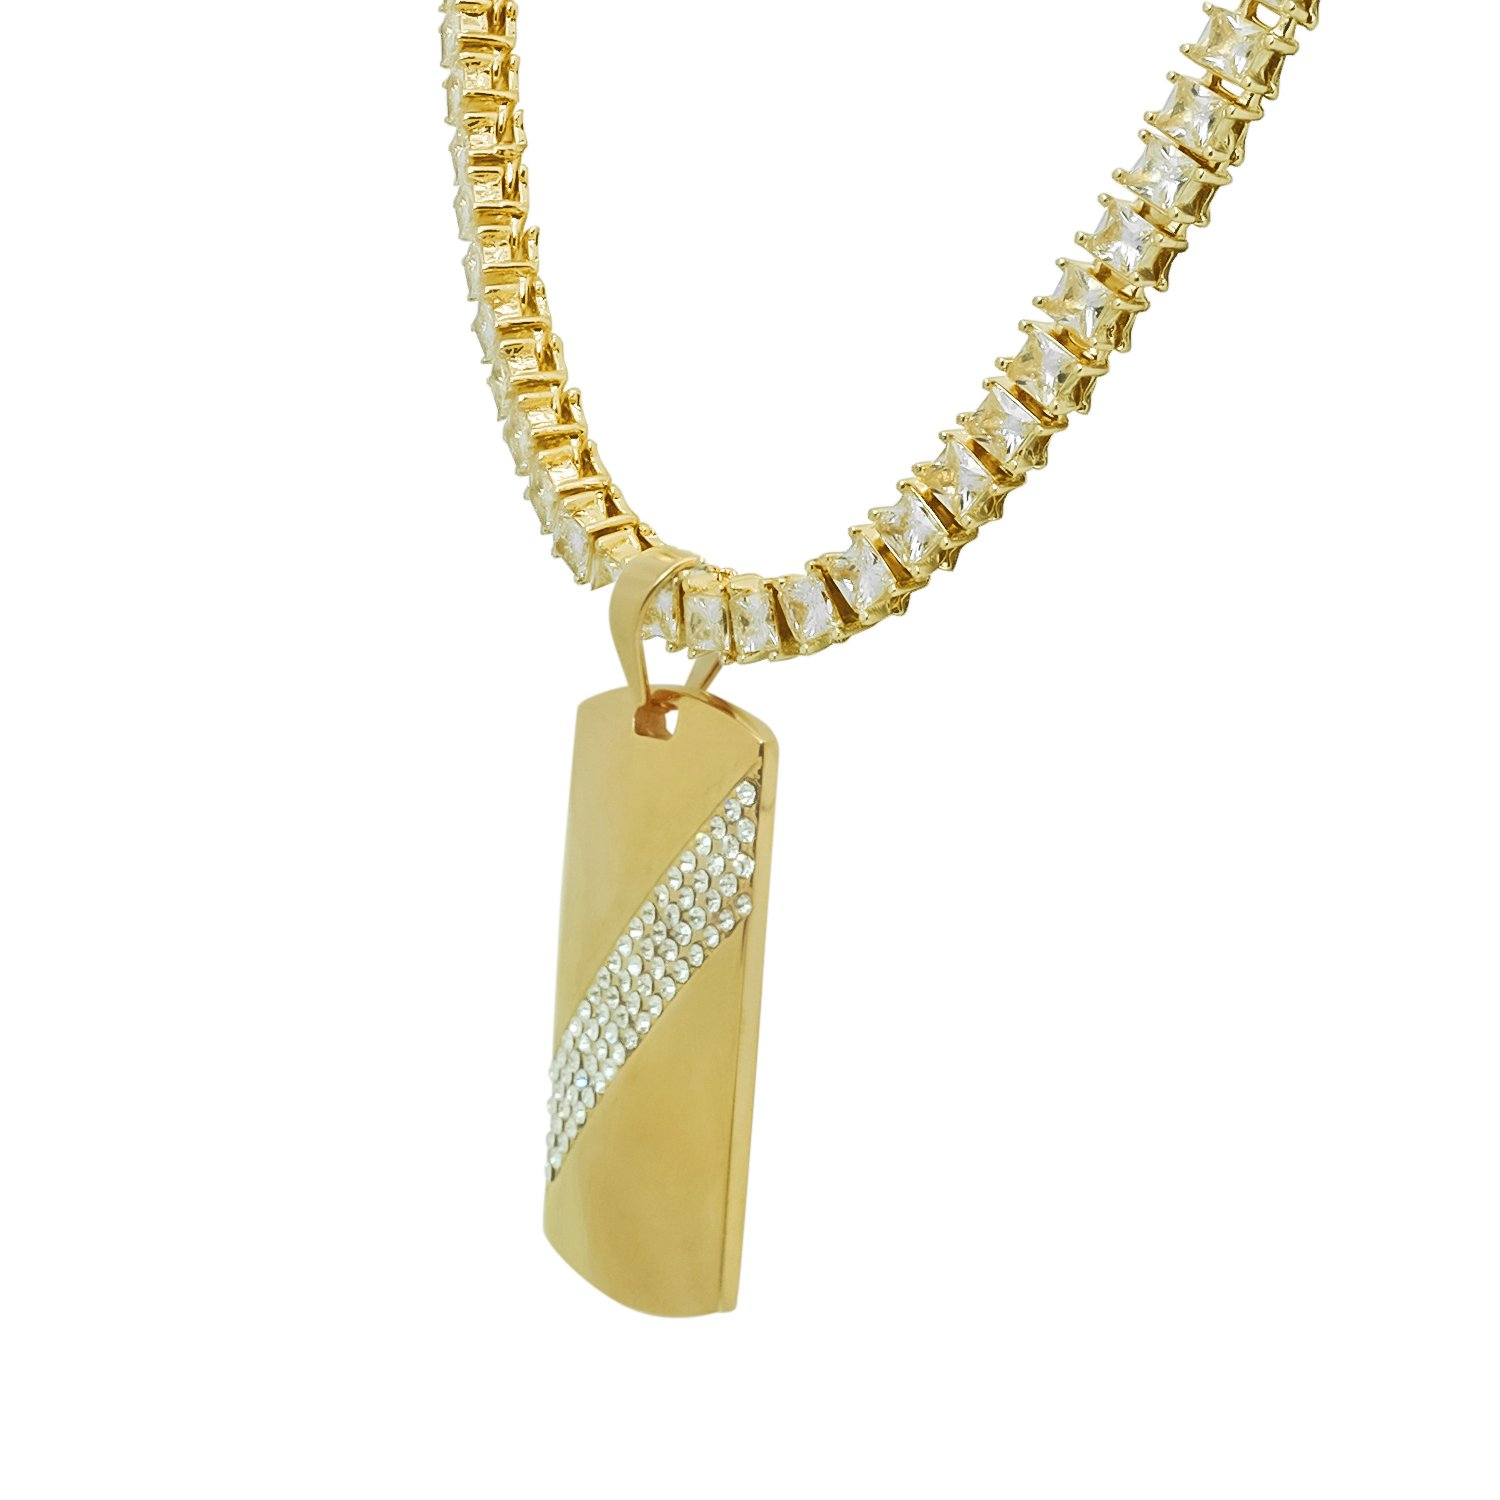 Stainless Steel Yellow Gold-Tone Iced Out Hip Hop Bling Rectangle Diagonal Dog Tag Pendant 1 Row Square Cubic Zirconia Princess Cut Stone Tennis Chain 24 Necklace Choker Chain